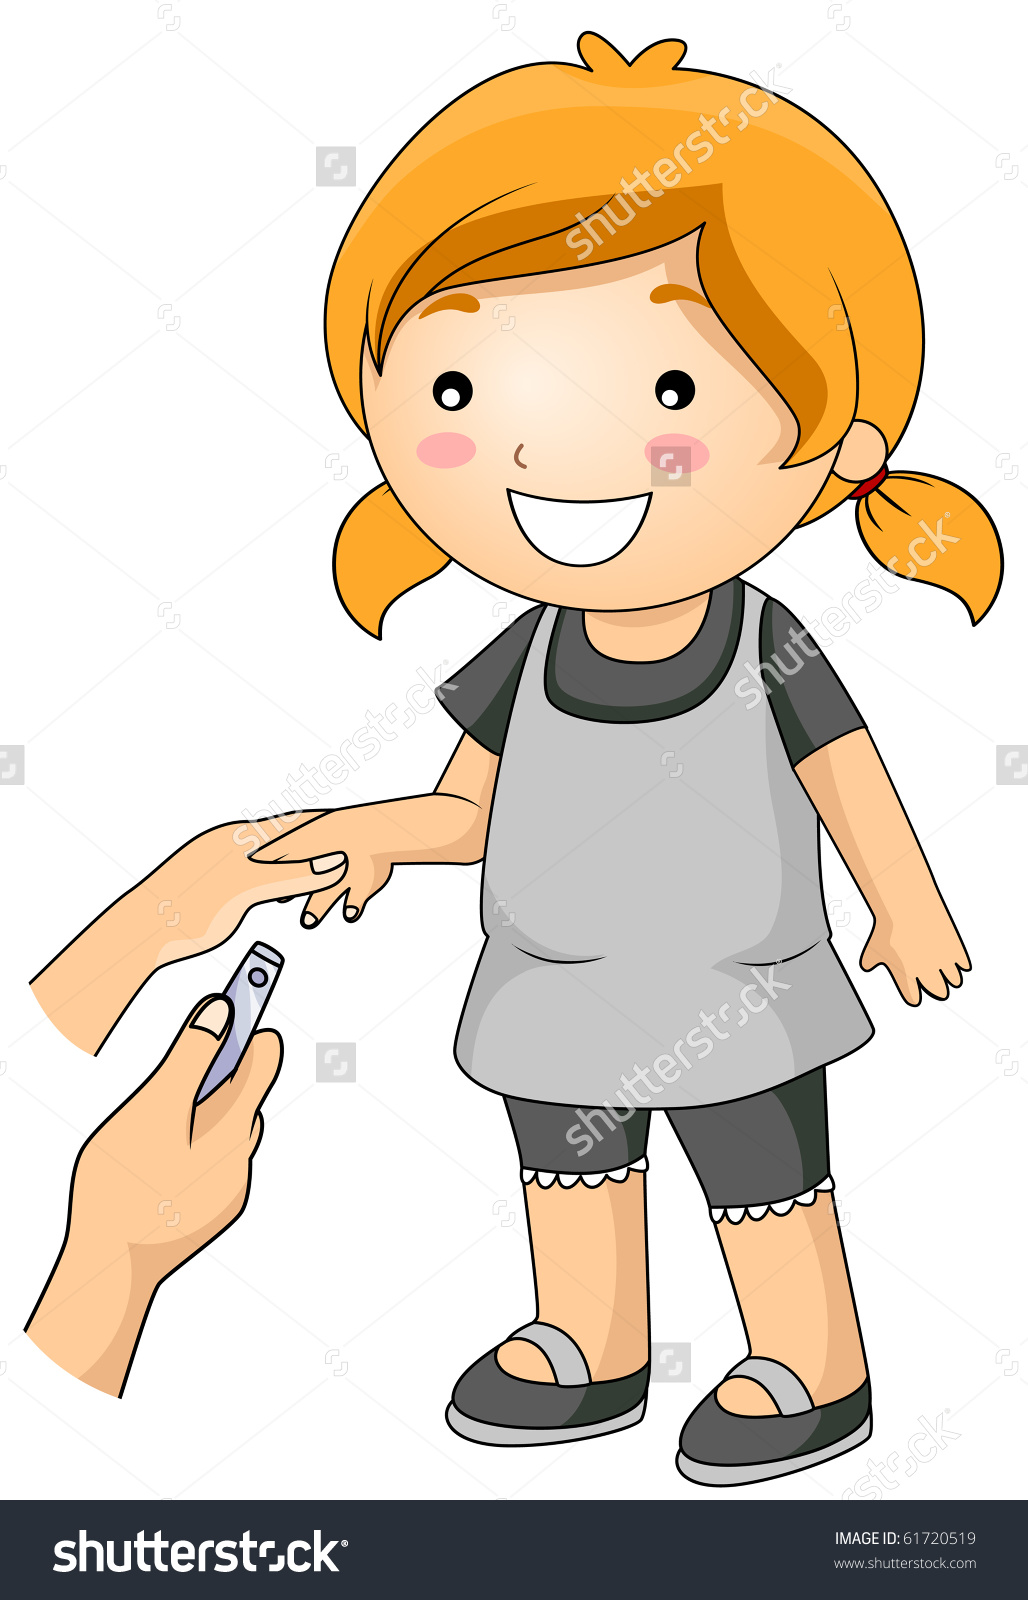 Cut your nails clipart.